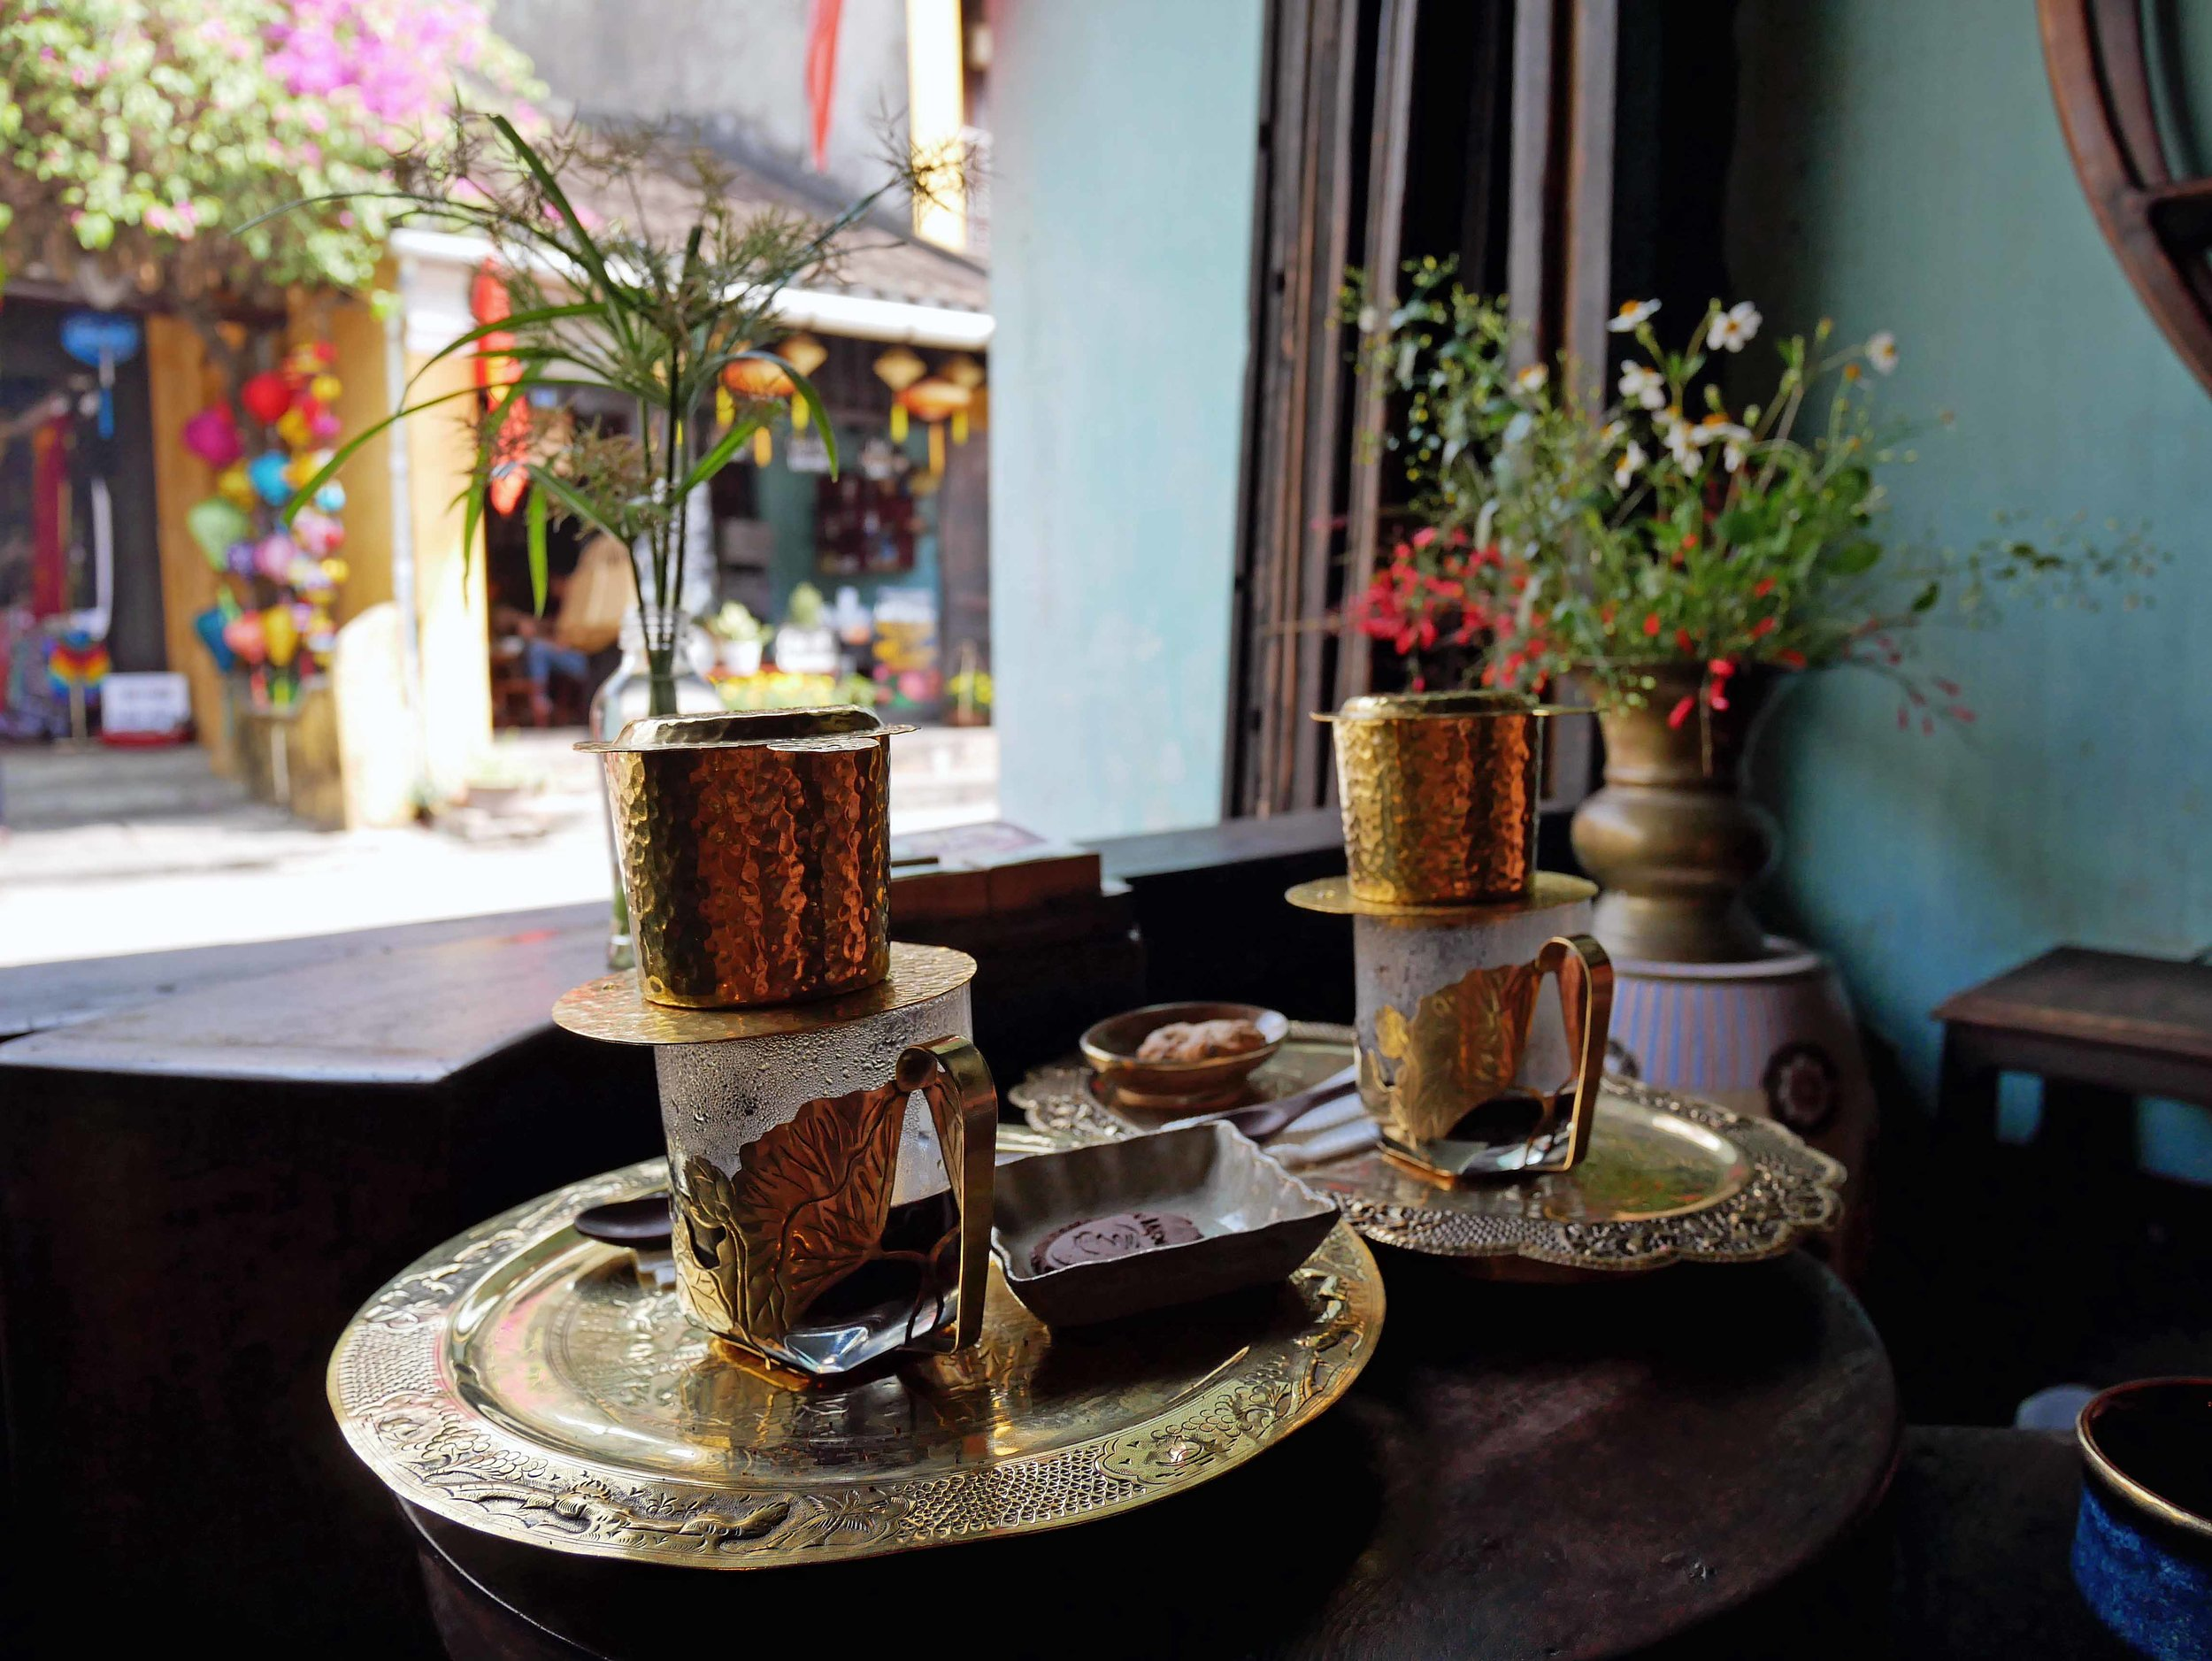 And the traditional Vietnamese coffee is rich. To beat the heat, we had ours on ice made of coffee.